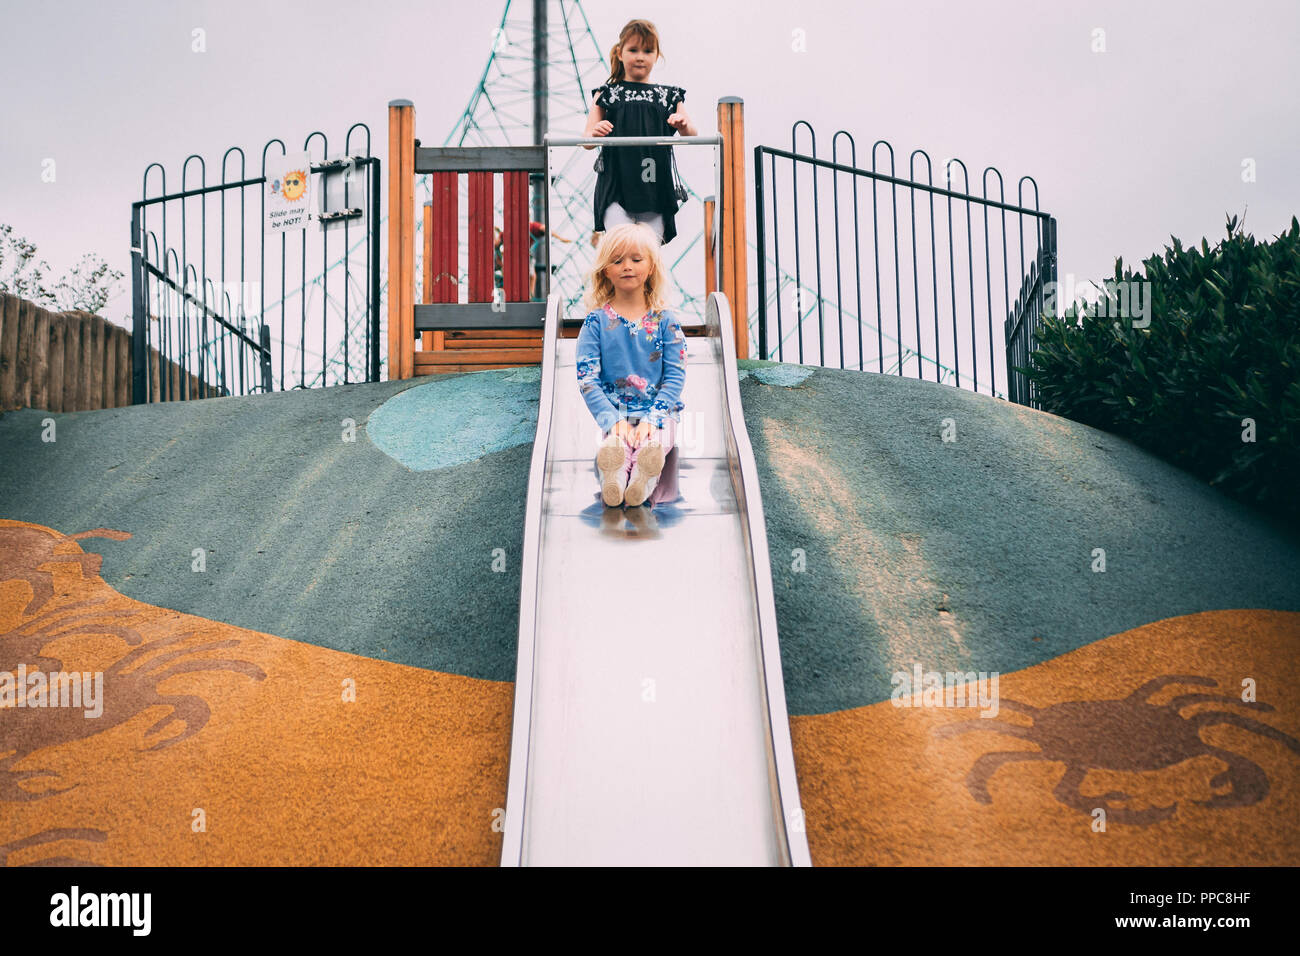 blonde girl play on slide in play park Stock Photo